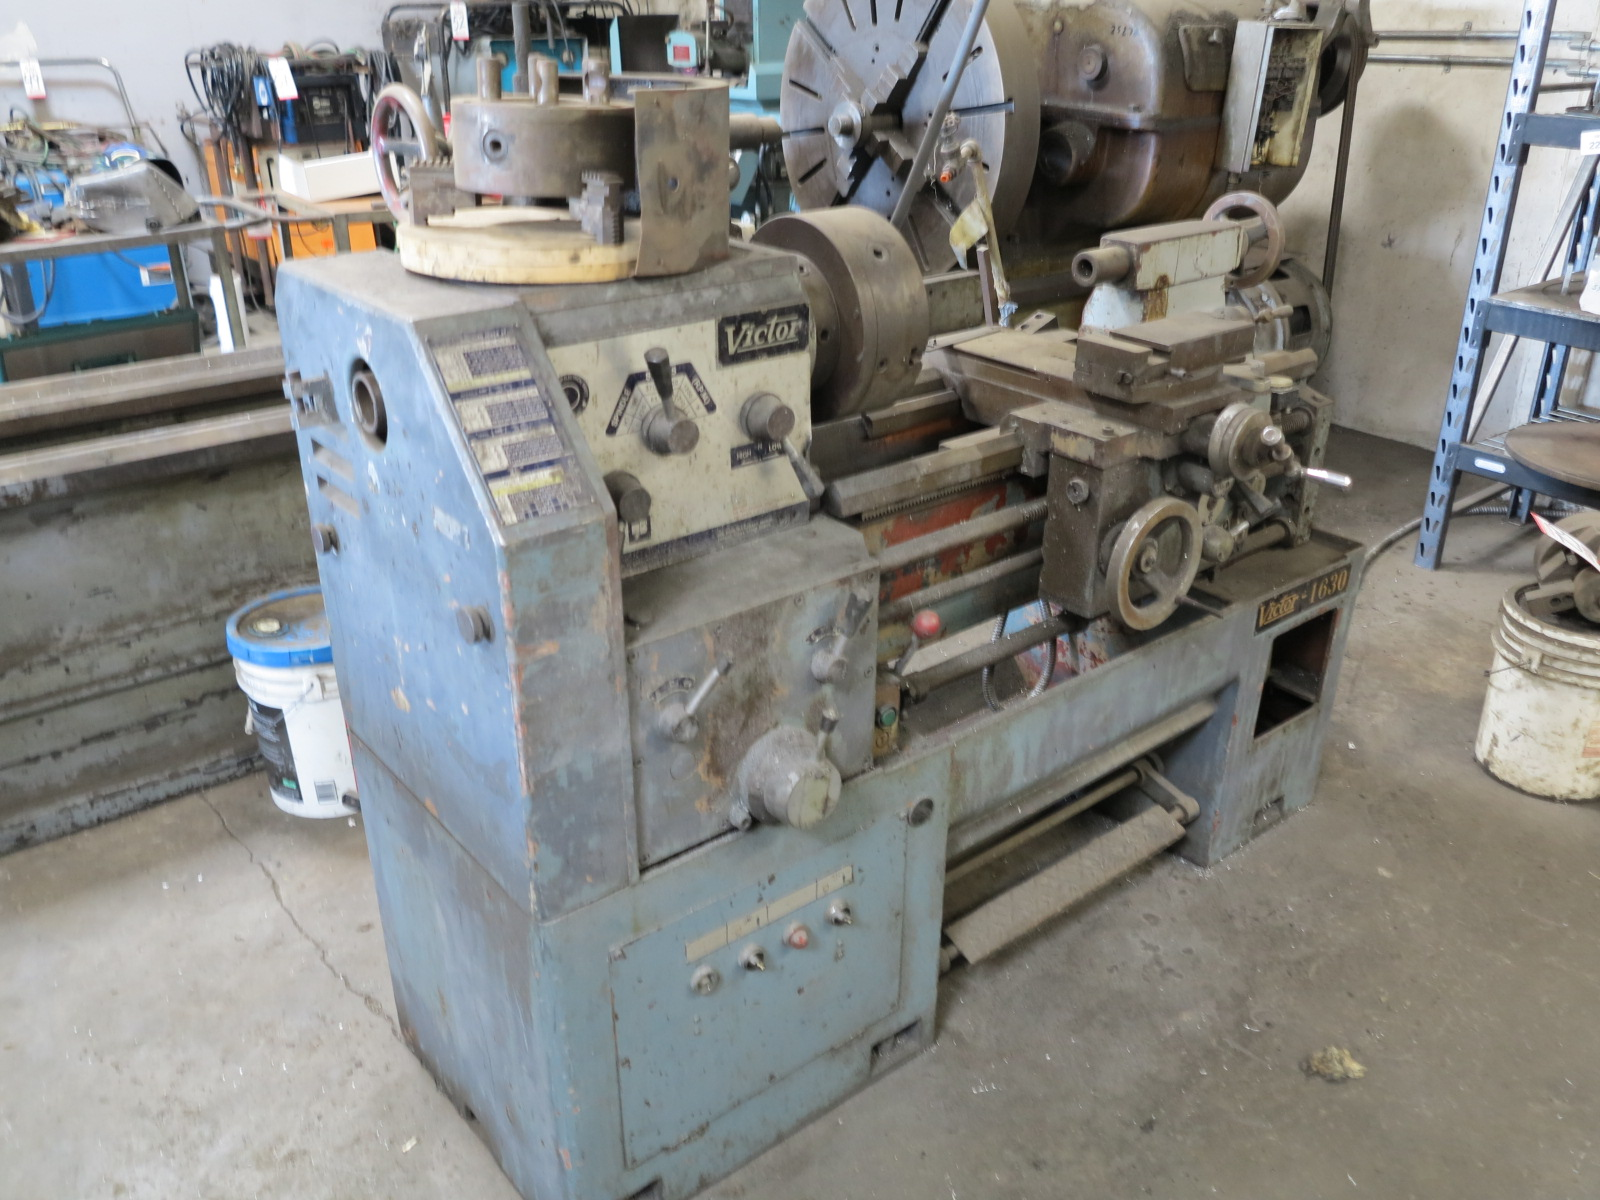 "VICTOR 1630 LATHE, W/ 10"" 3-JAW CHUCK, TAILSTOCK - Image 2 of 3"